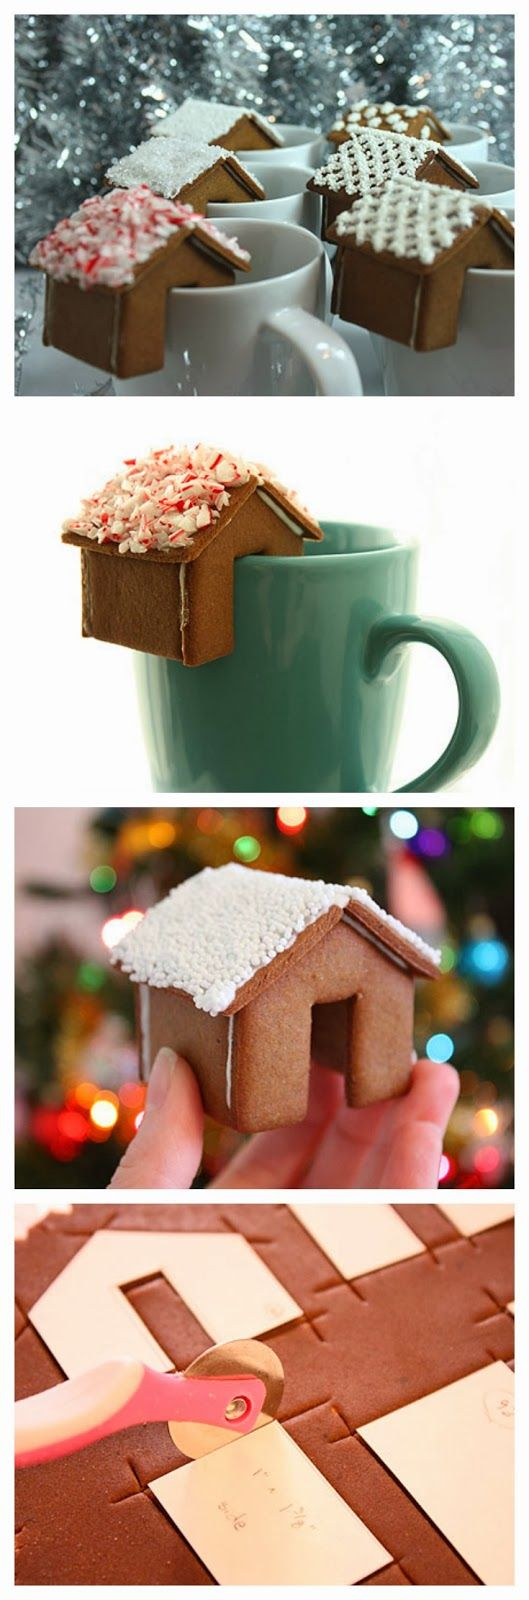 These are too cute - Gingerbread houses that perch on your mug!: